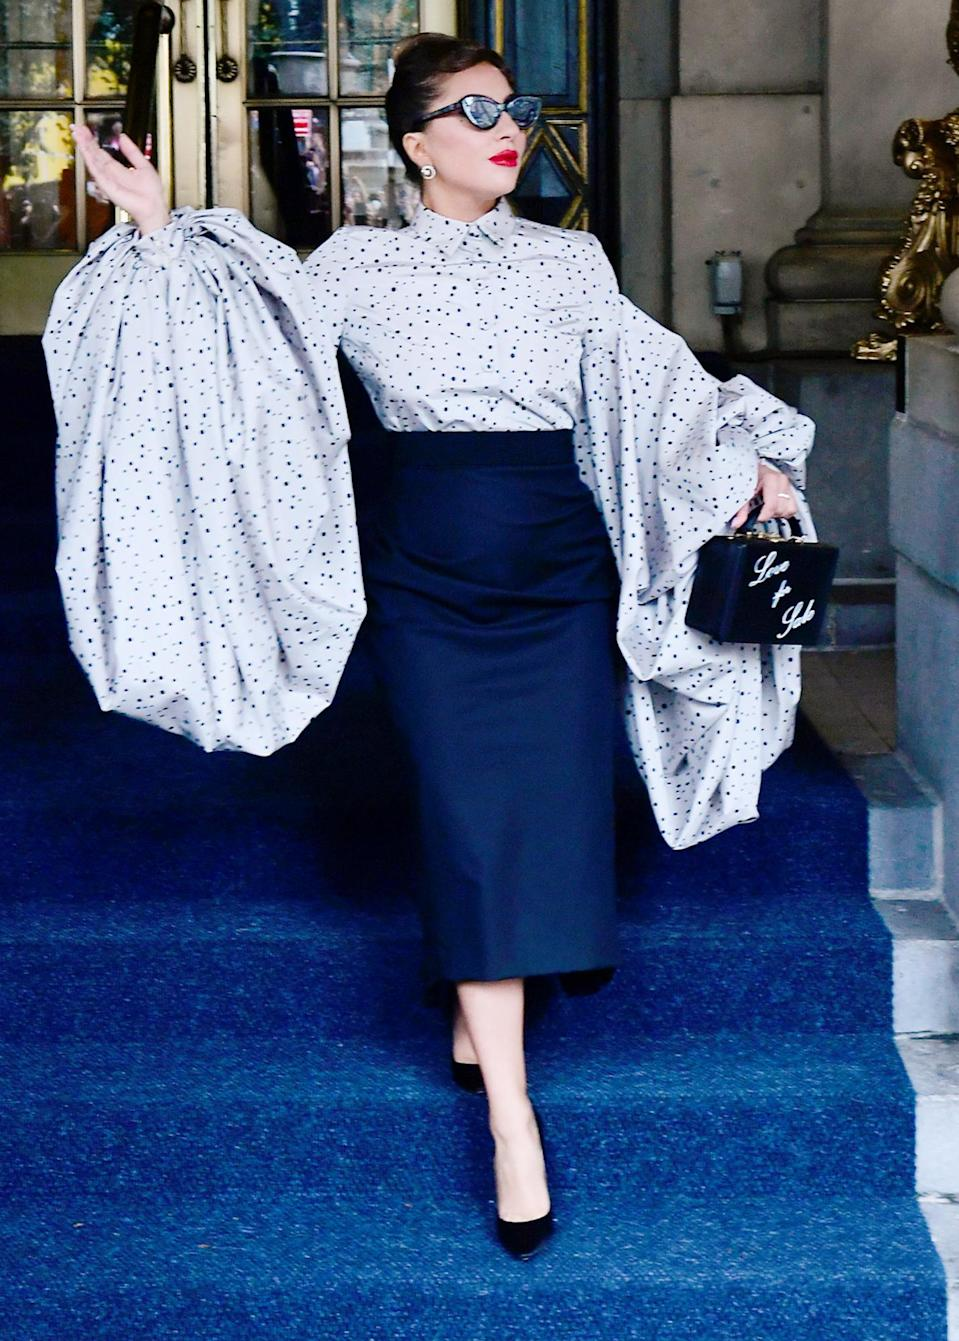 <p>Lady Gaga takes glam to the next level with her patterned blouse with oversized sleeves on July 2 in N.Y.C.</p>